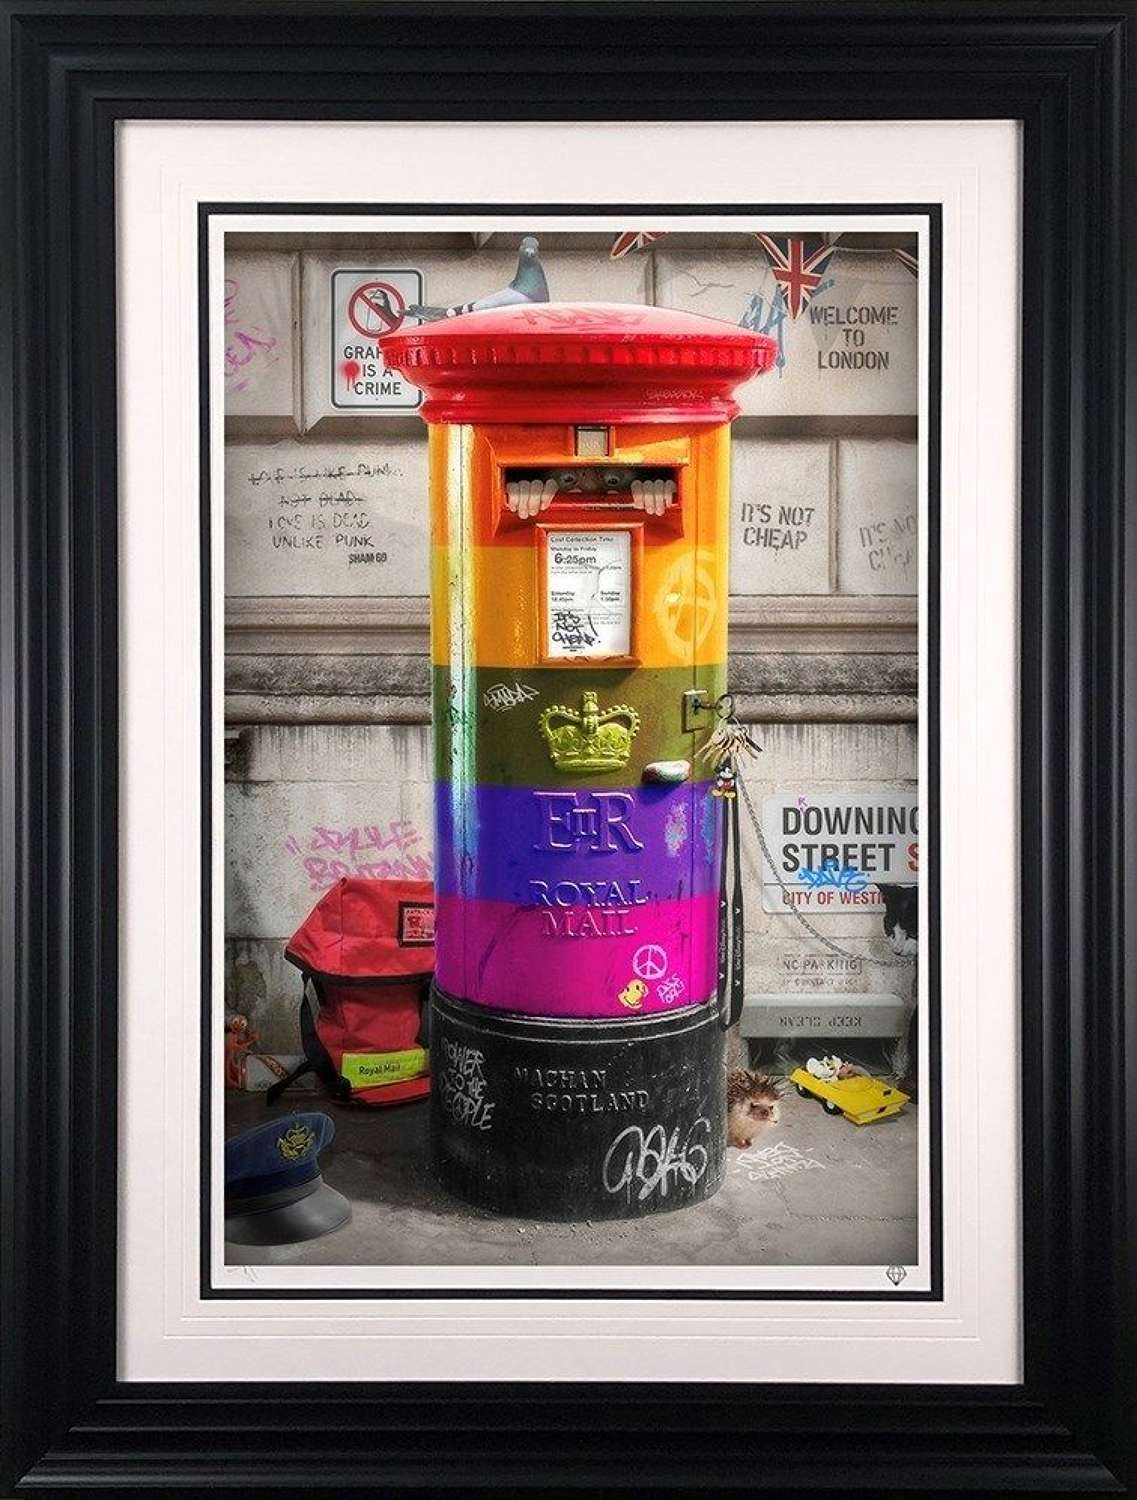 Postman Patrick - Rainbow Edition Framed Art Print by JJ Adams